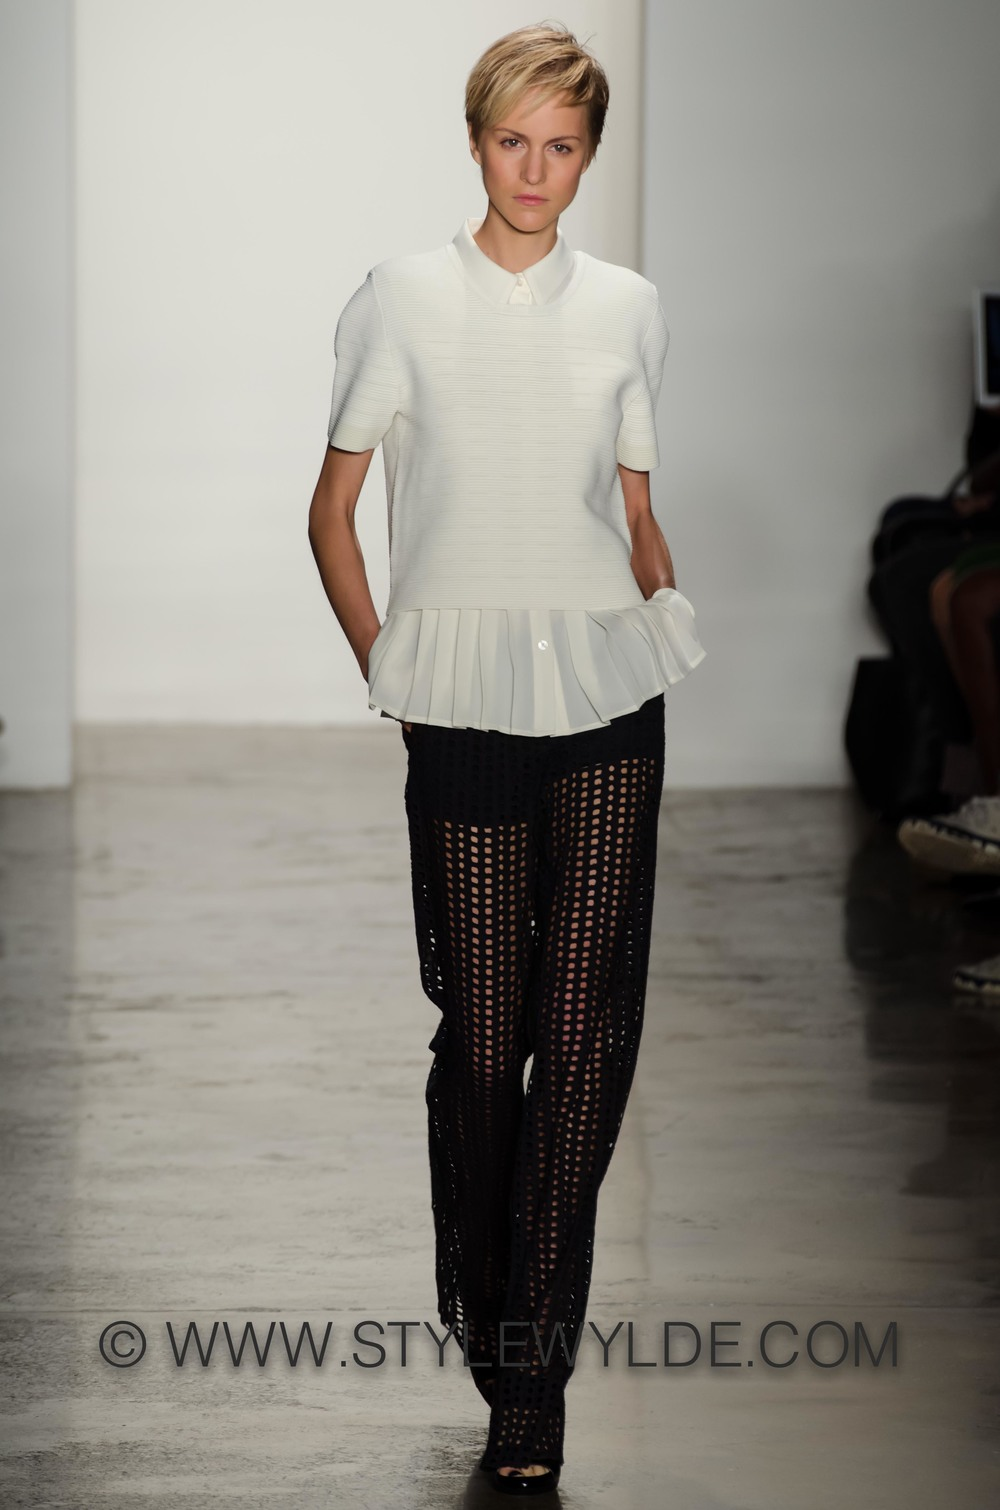 stylewylde_timo_weiland_gallery_ss2014-8.jpg